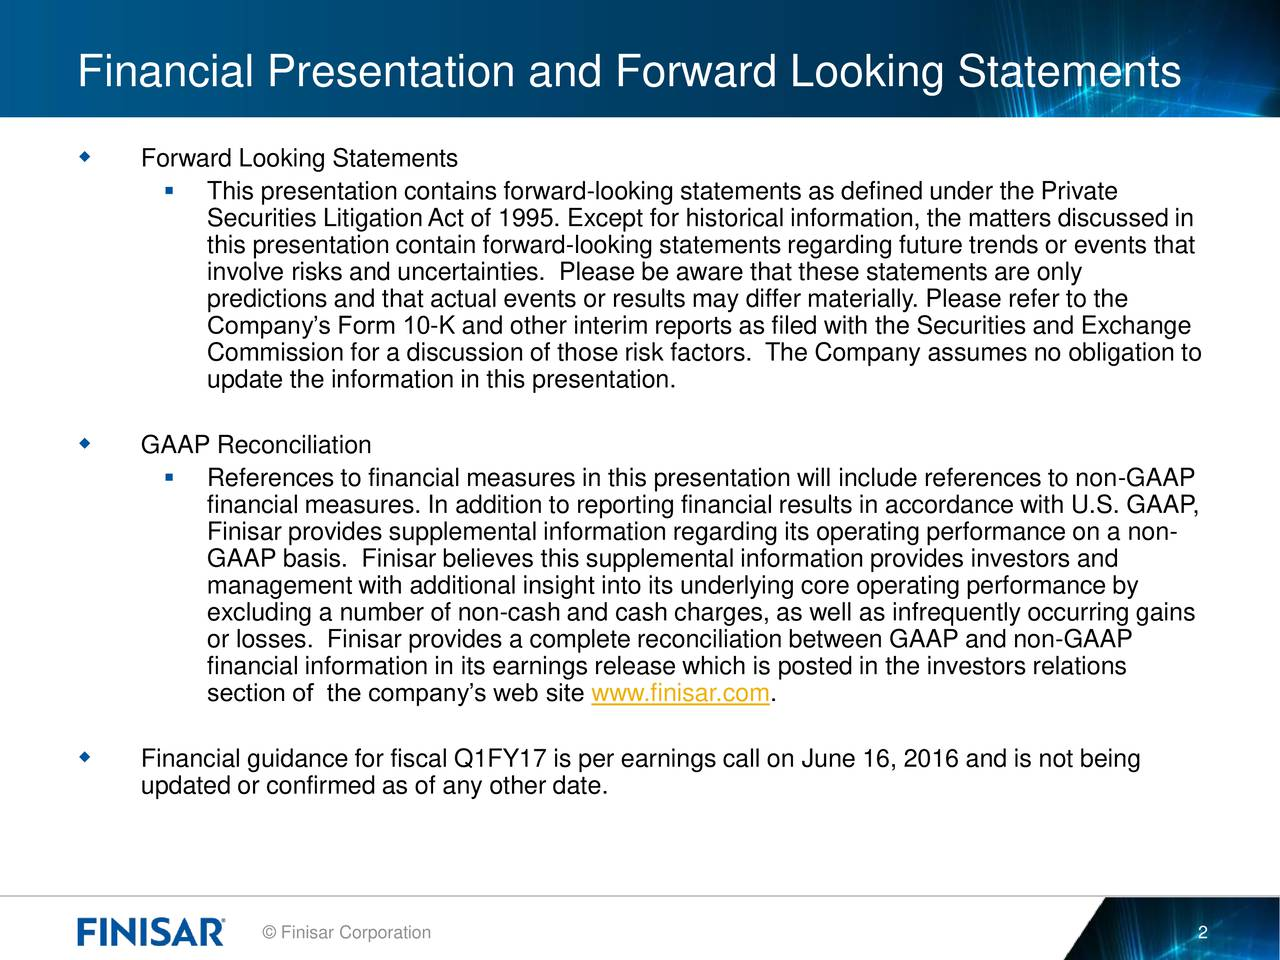 Forward Looking Statements This presentation contains forward-looking statements as defined under the Private Securities LitigationAct of 1995. Except for historical information, the matters discussed in this presentation contain forward-looking statements regarding future trends or events that involve risks and uncertainties. Please be aware that these statements are only predictions and that actual events or results may differ materially. Please refer to the Companys Form 10-K and other interim reports as filed with the Securities and Exchange Commission for a discussion of those risk factors. The Company assumes no obligation to update the information in this presentation. GAAP Reconciliation References to financial measures in this presentation will include references to non-GAAP financial measures. In addition to reporting financial results in accordance with U.S. GAAP, Finisar provides supplemental information regarding its operating performance on a non- GAAP basis. Finisar believes this supplemental information provides investors and management with additional insight into its underlying core operating performance by excluding a number of non-cash and cash charges, as well as infrequently occurring gains or losses. Finisar provides a complete reconciliation between GAAP and non-GAAP financial information in its earnings release which is posted in the investors relations section of the companys web site www.finisar.com. Financial guidance for fiscal Q1FY17 is per earnings call on June 16, 2016 and is not being updated or confirmed as of any other date. Finisar Corporation 2